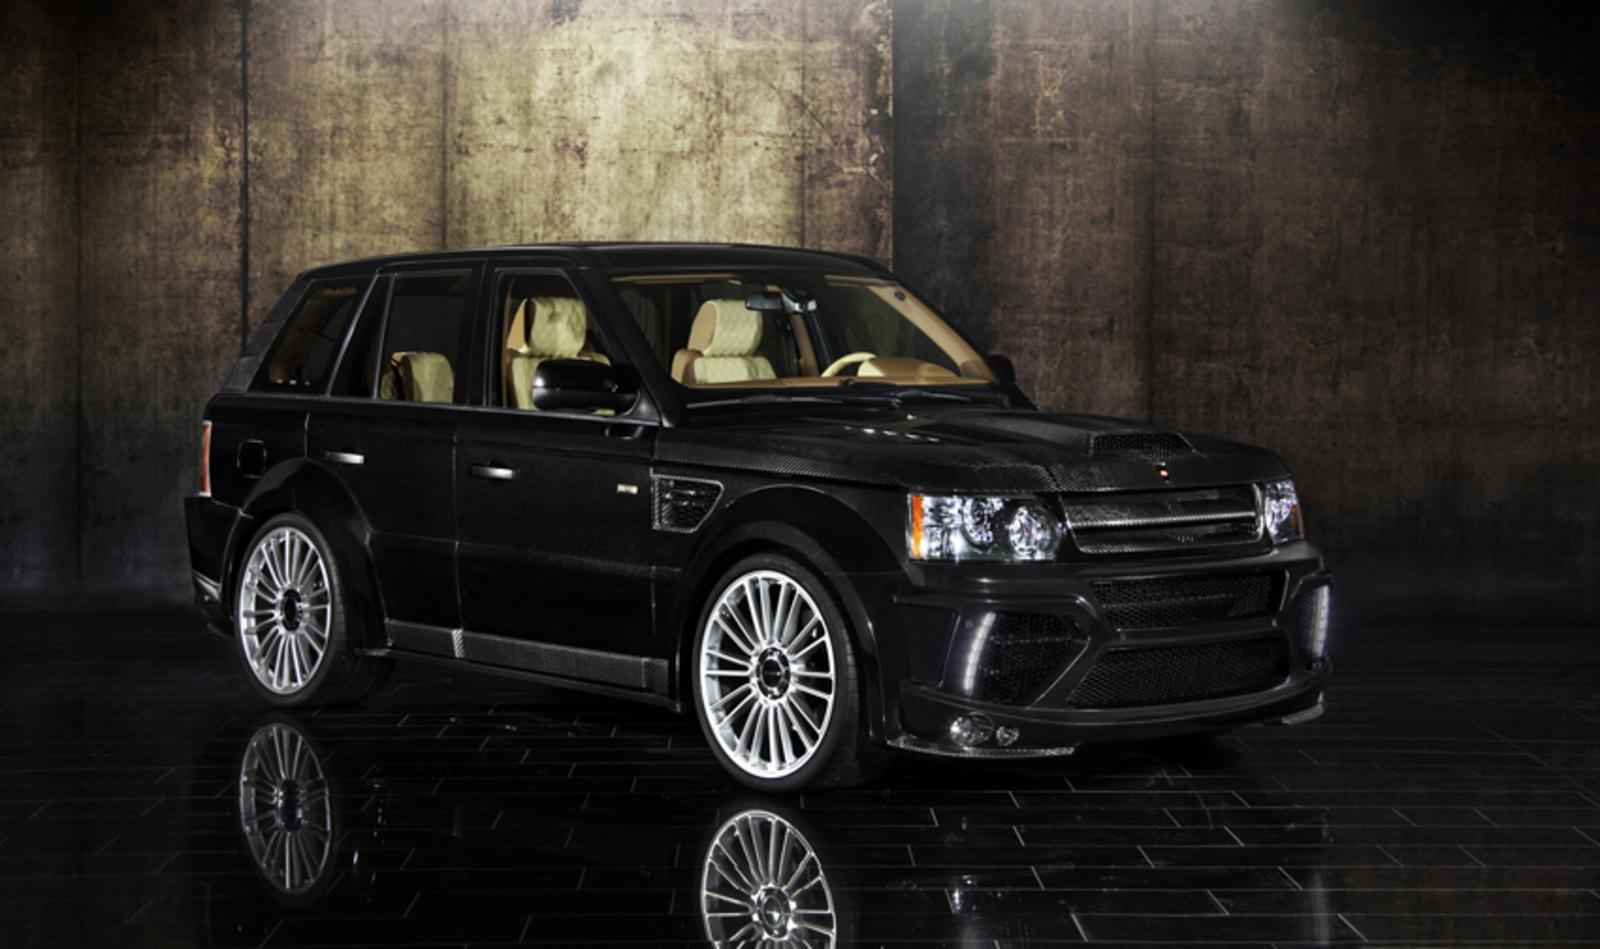 Land Rover Range Sport Reviews Specs Prices Photos And 2007 Supercharged Firing Order With Diagrams Images 2010 Landrover By Mansory